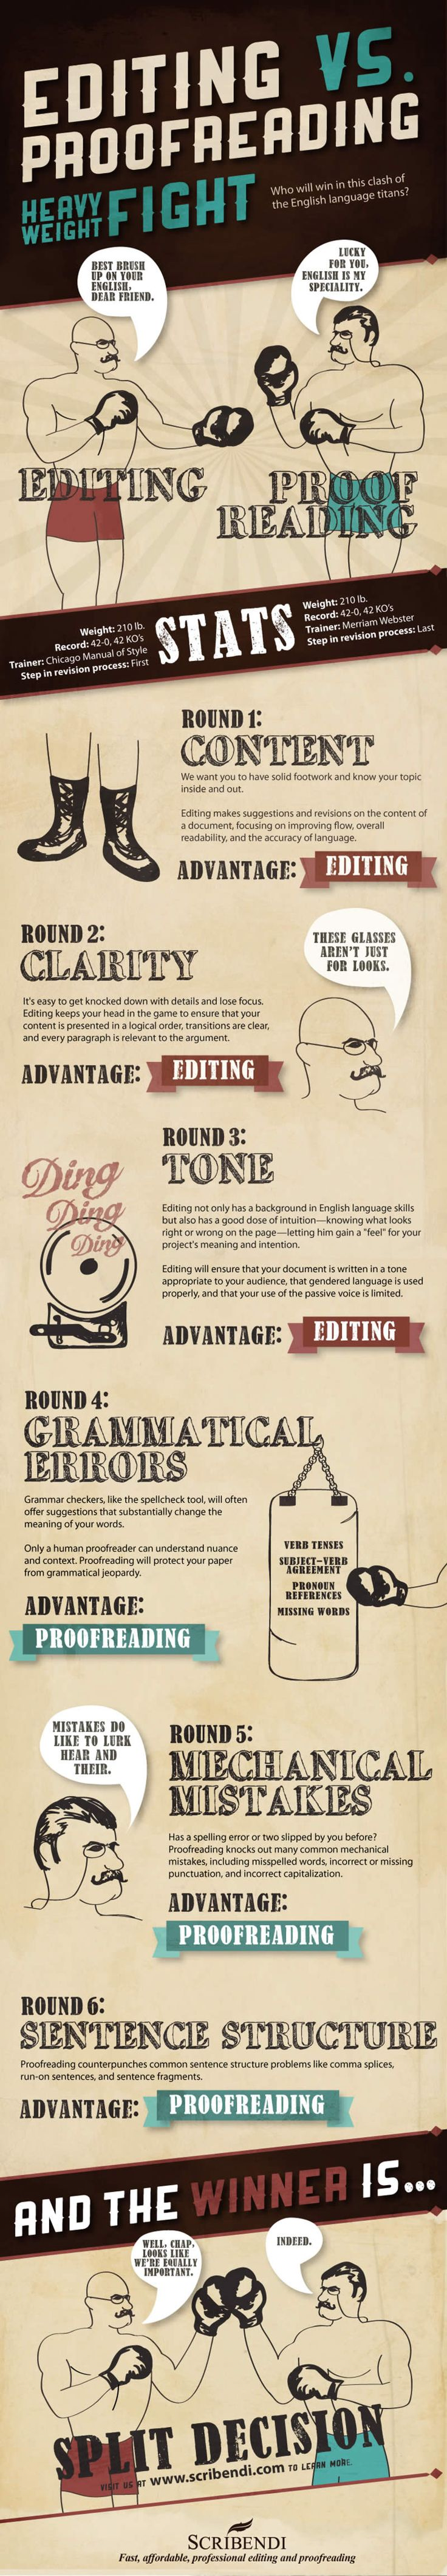 Scribendi.com's infographic about the difference between editing and proofreading.